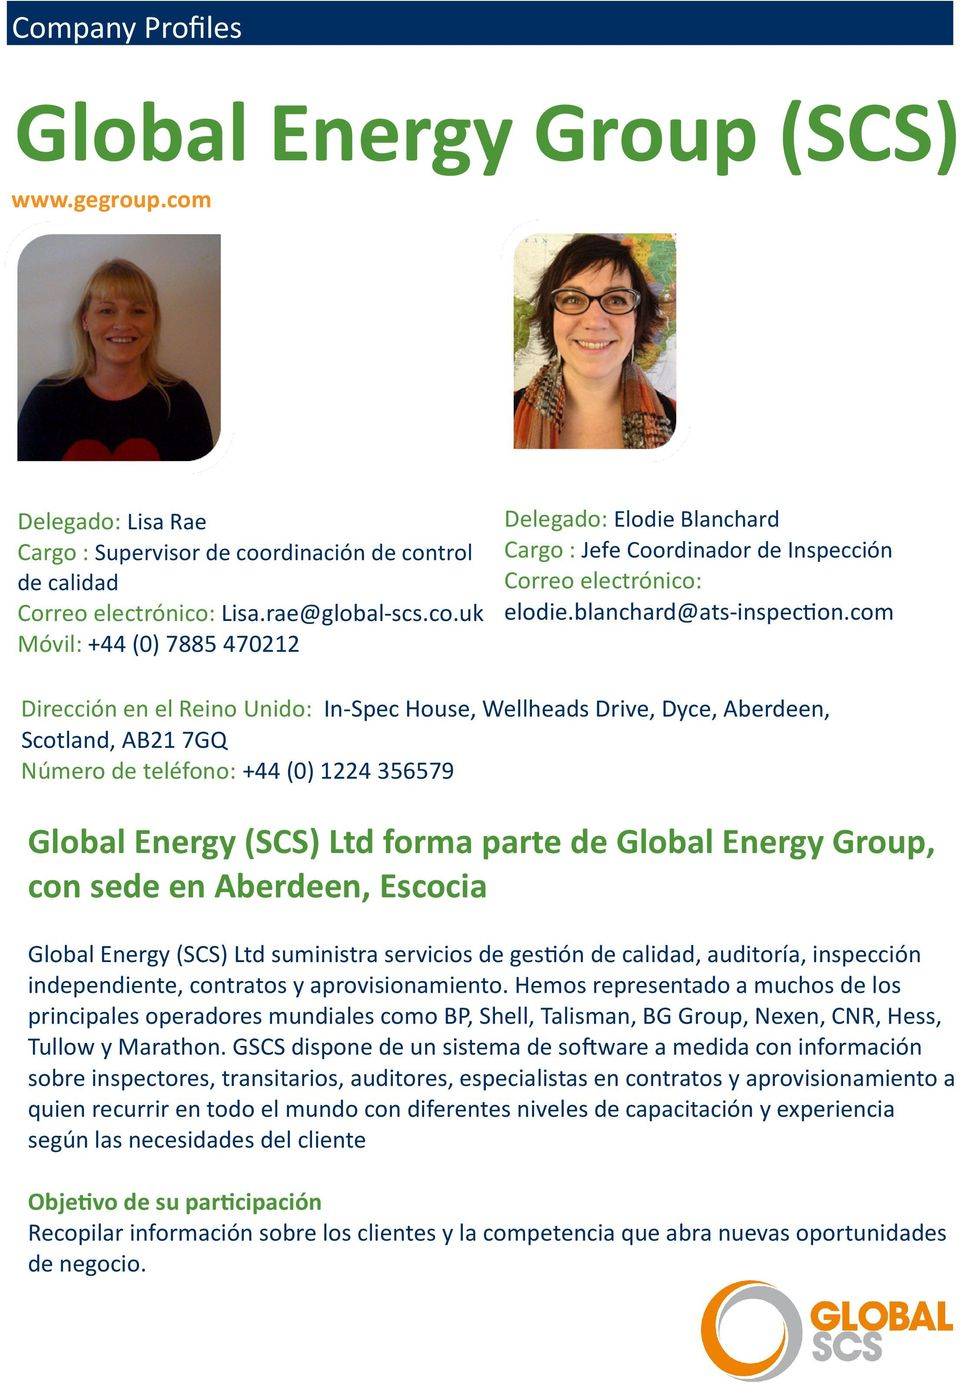 com Dirección en el Reino Unido: In-Spec House, Wellheads Drive, Dyce, Aberdeen, Scotland, AB21 7GQ Número de teléfono: +44 (0) 1224 356579 Global Energy (SCS) Ltd forma parte de Global Energy Group,